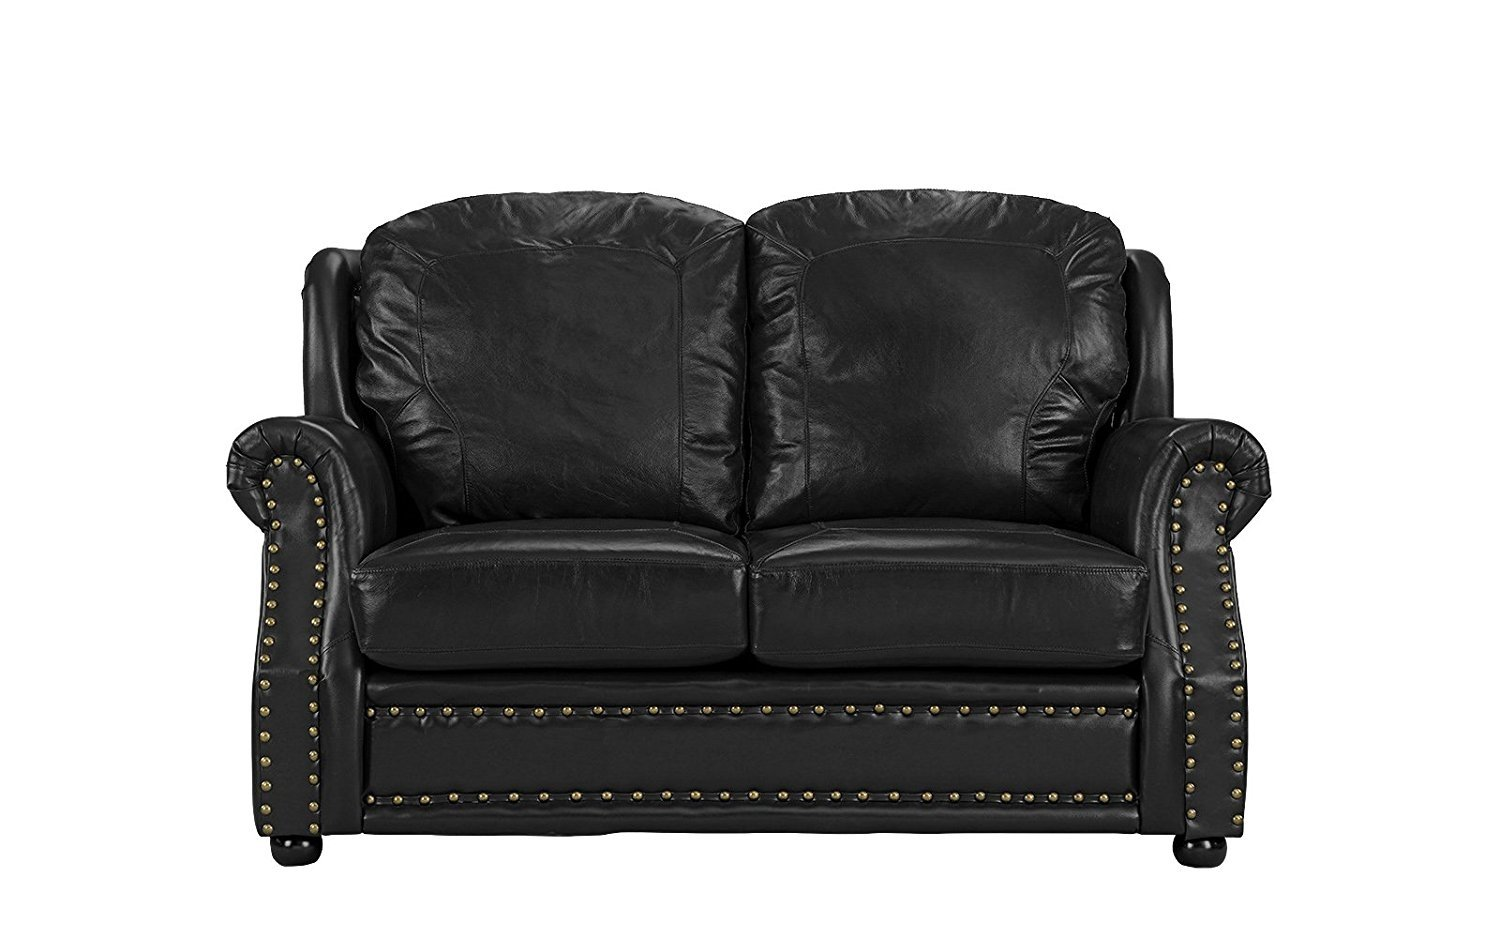 Leather Sofa 2 Seater, Living Room Couch Love Seat with Nailhead ...